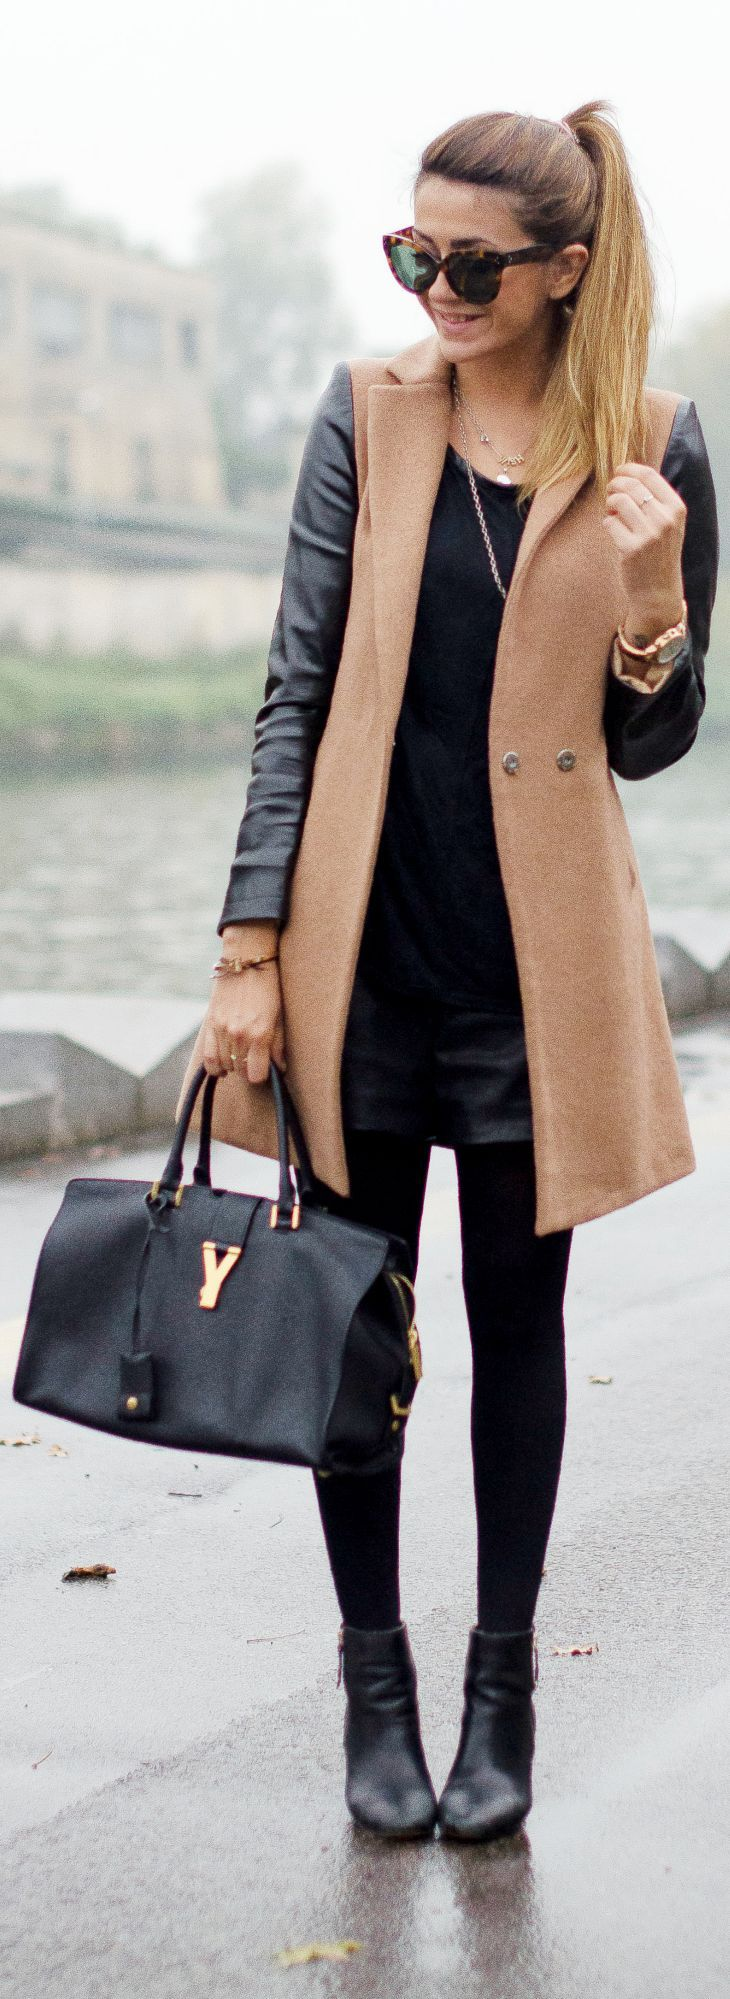 17 Best ideas about Winter Coat Outfits on Pinterest | Winter ...